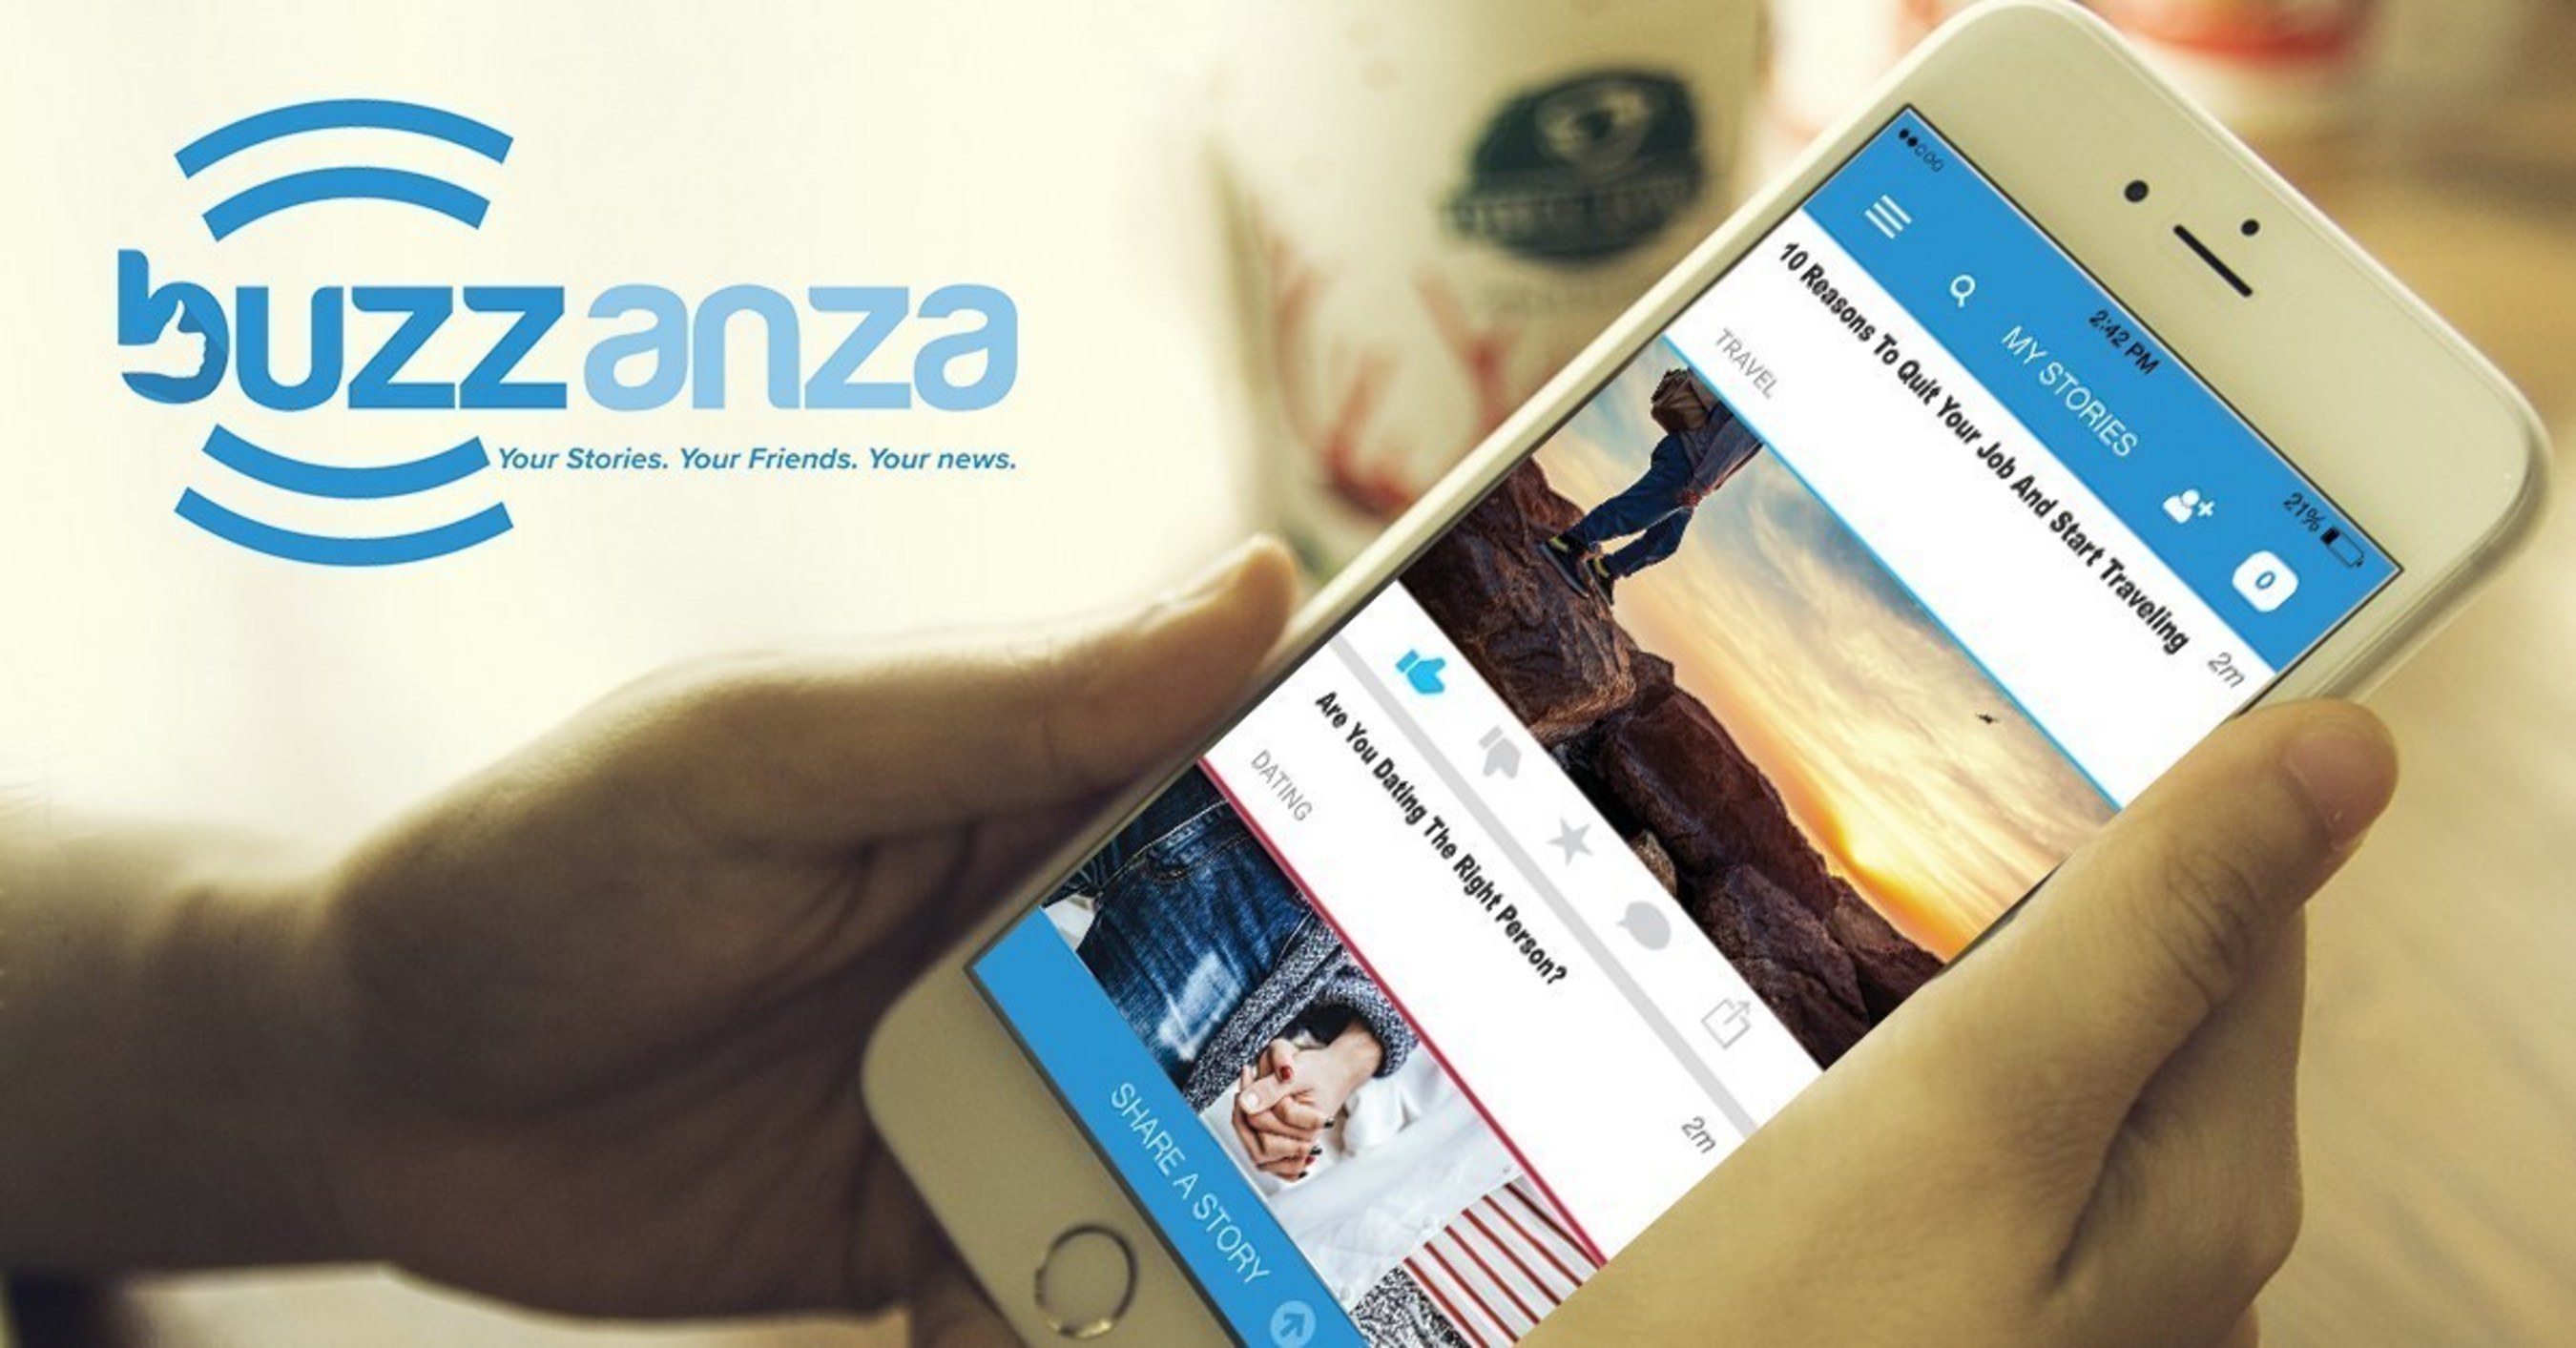 Buzzanza - A New Social Networking Platform - Transforms Content Discovery And Sharing For Millennials